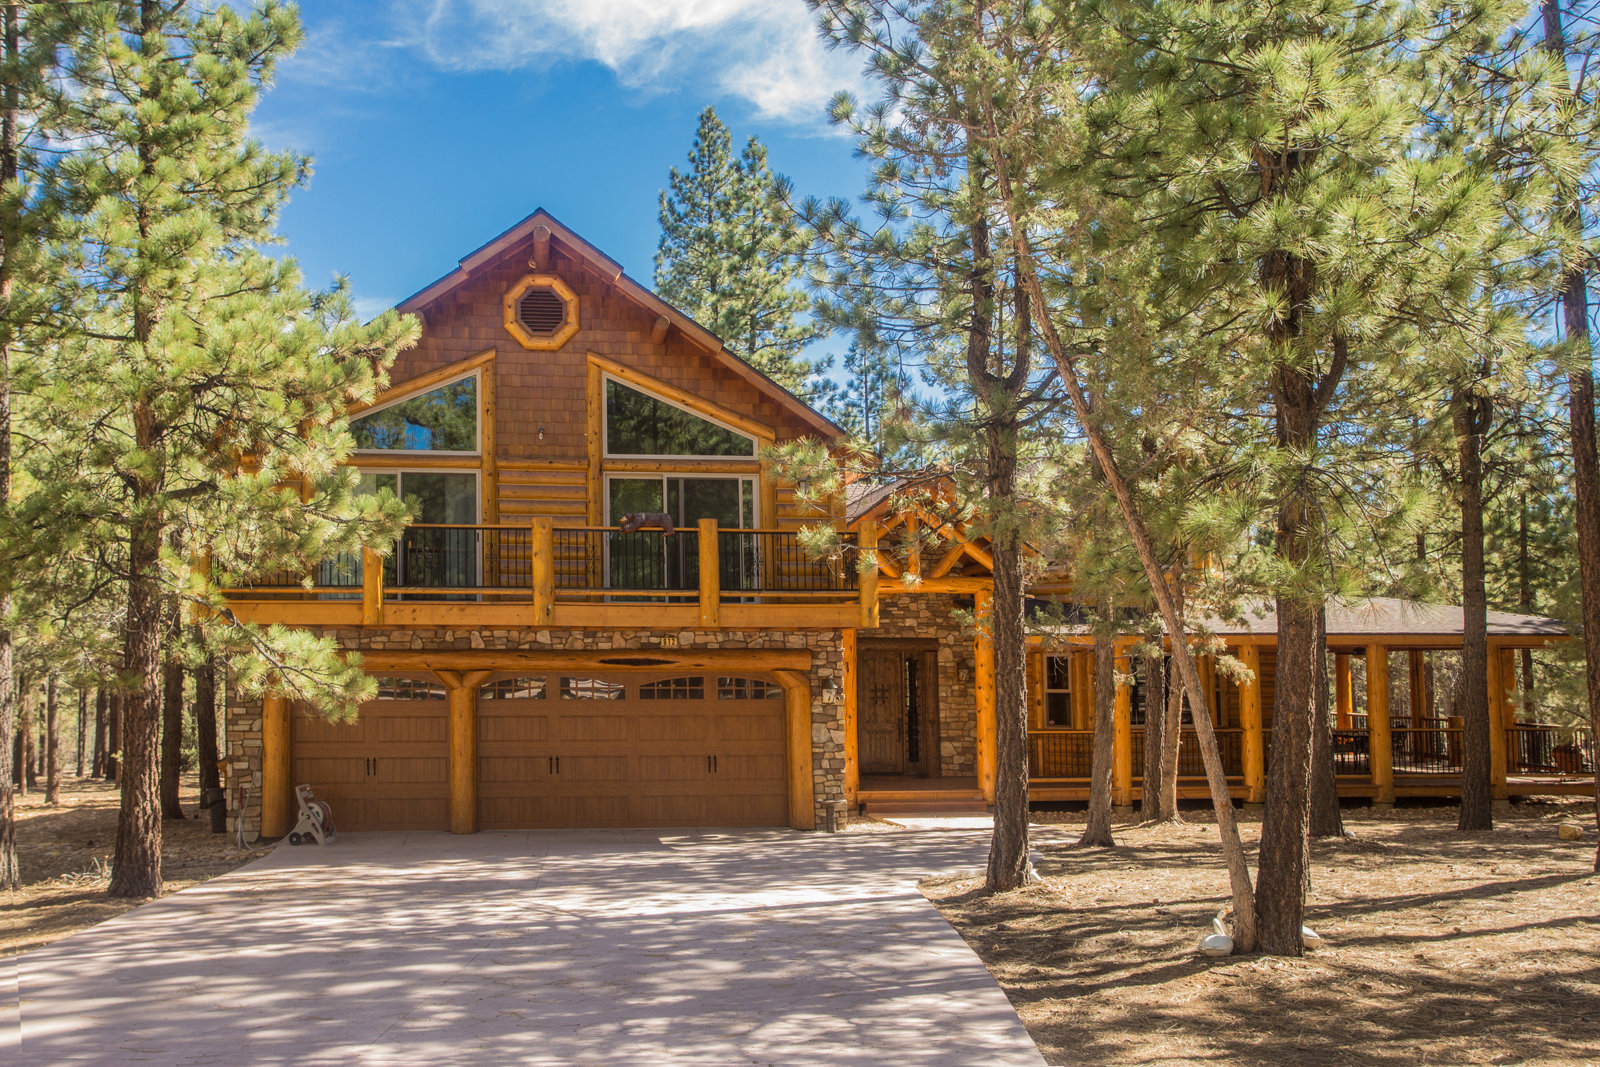 Mike wochner 909 633 2558 re max your premier real for Big bear ca cabins